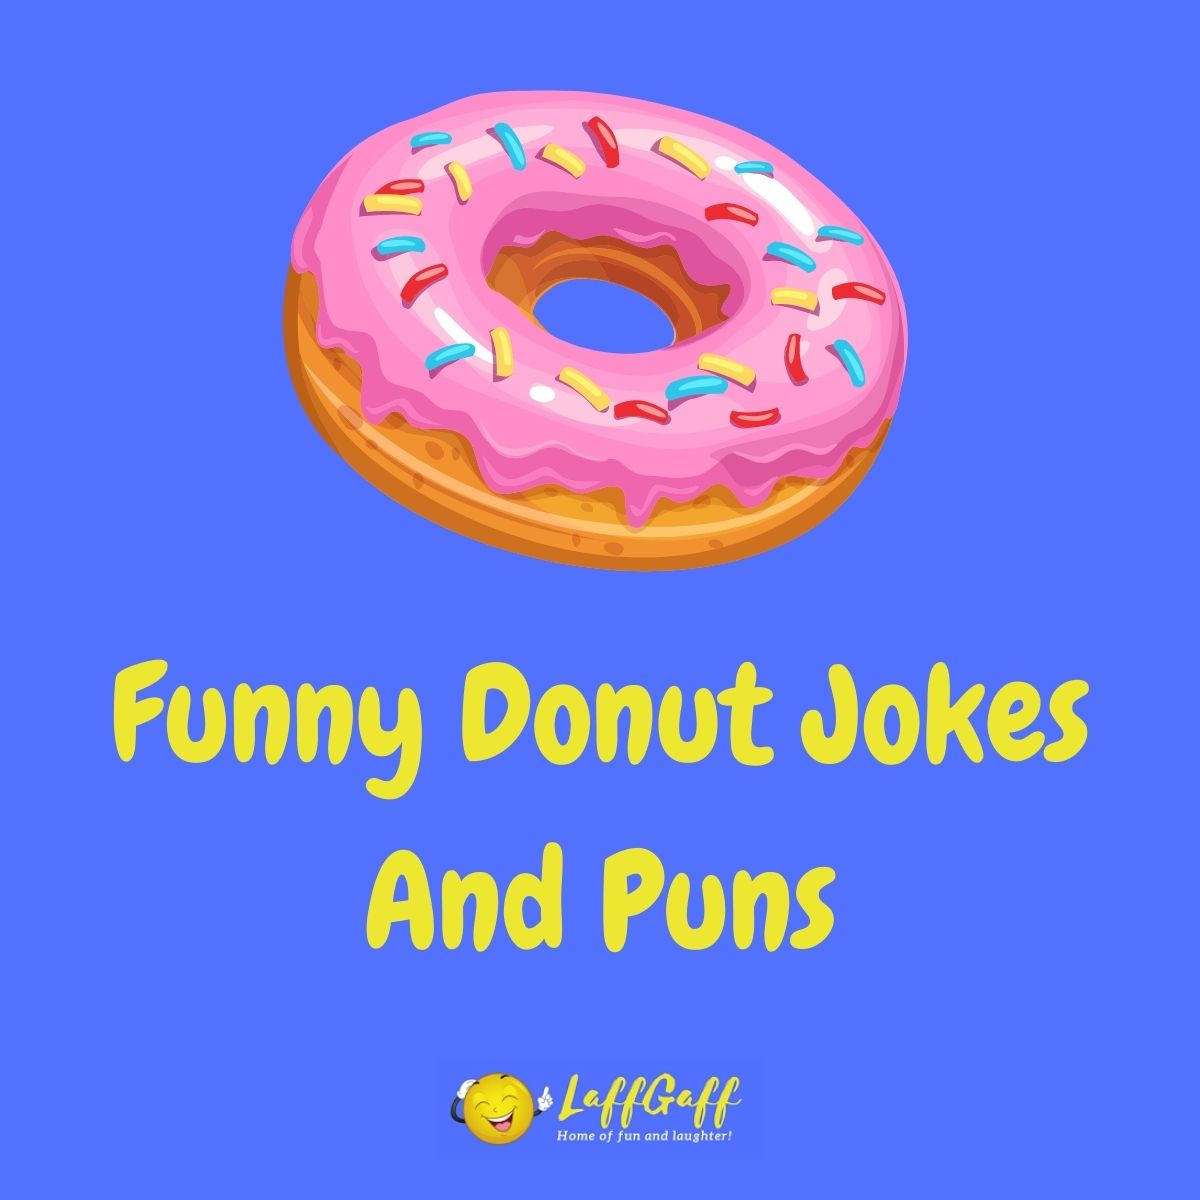 Featured image for a page of funny donut jokes and puns.